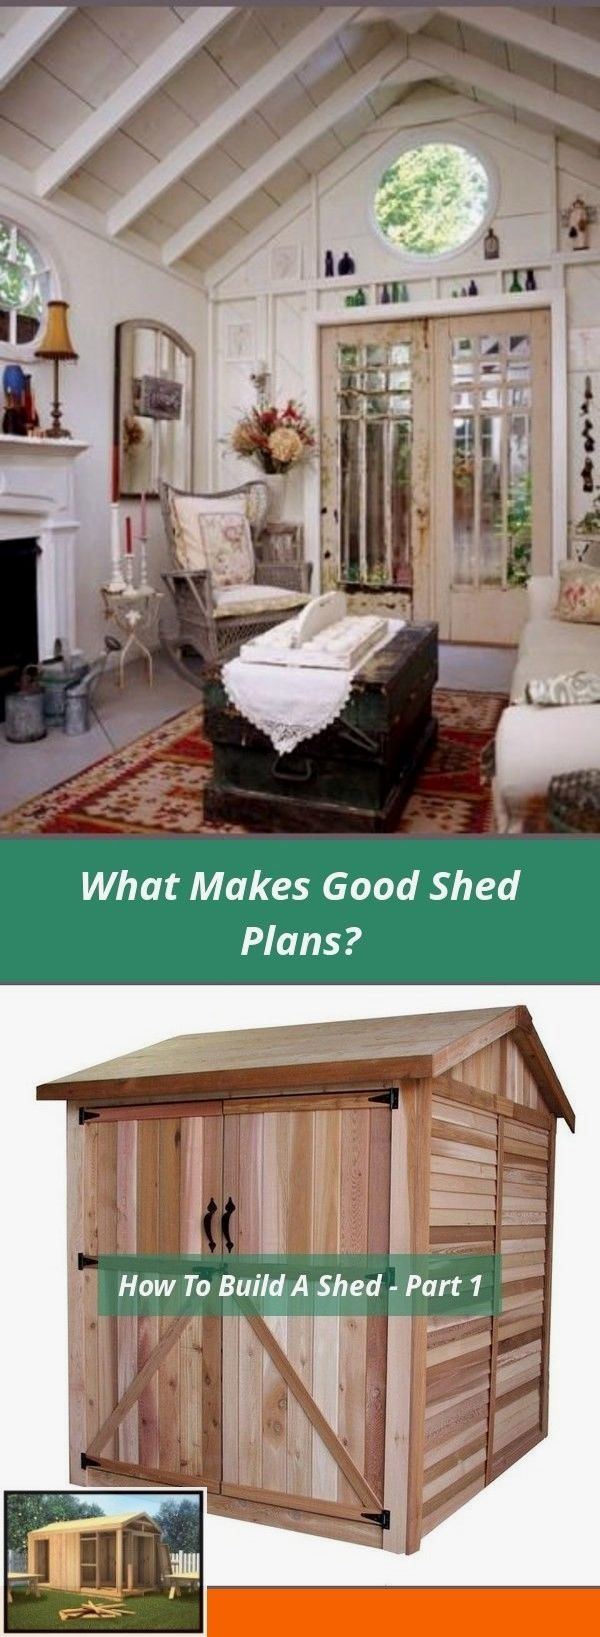 Framing A 10x10 Room: Pin On Storage Shed Plans DIY